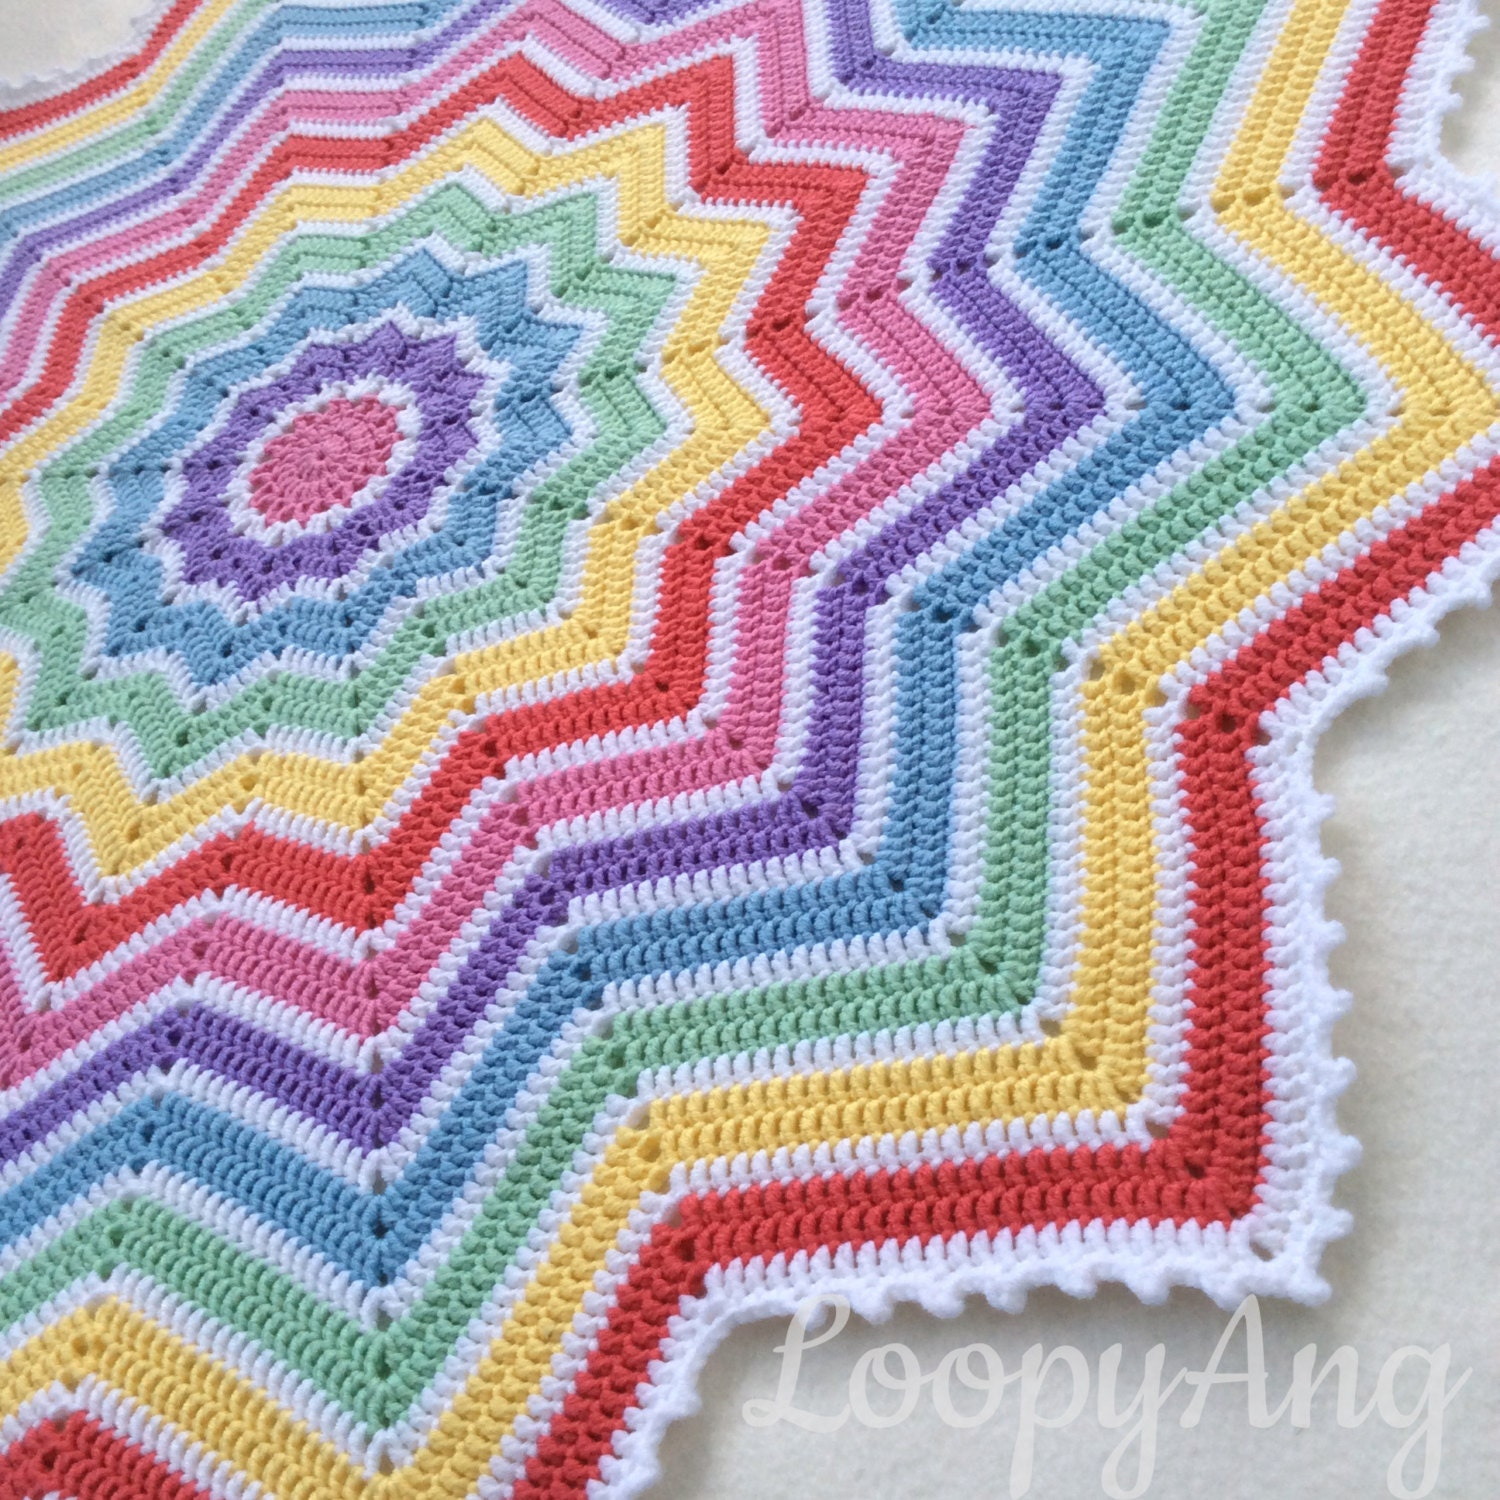 Crochet Rainbow Baby Blanket 12 Pointed Star Afghan